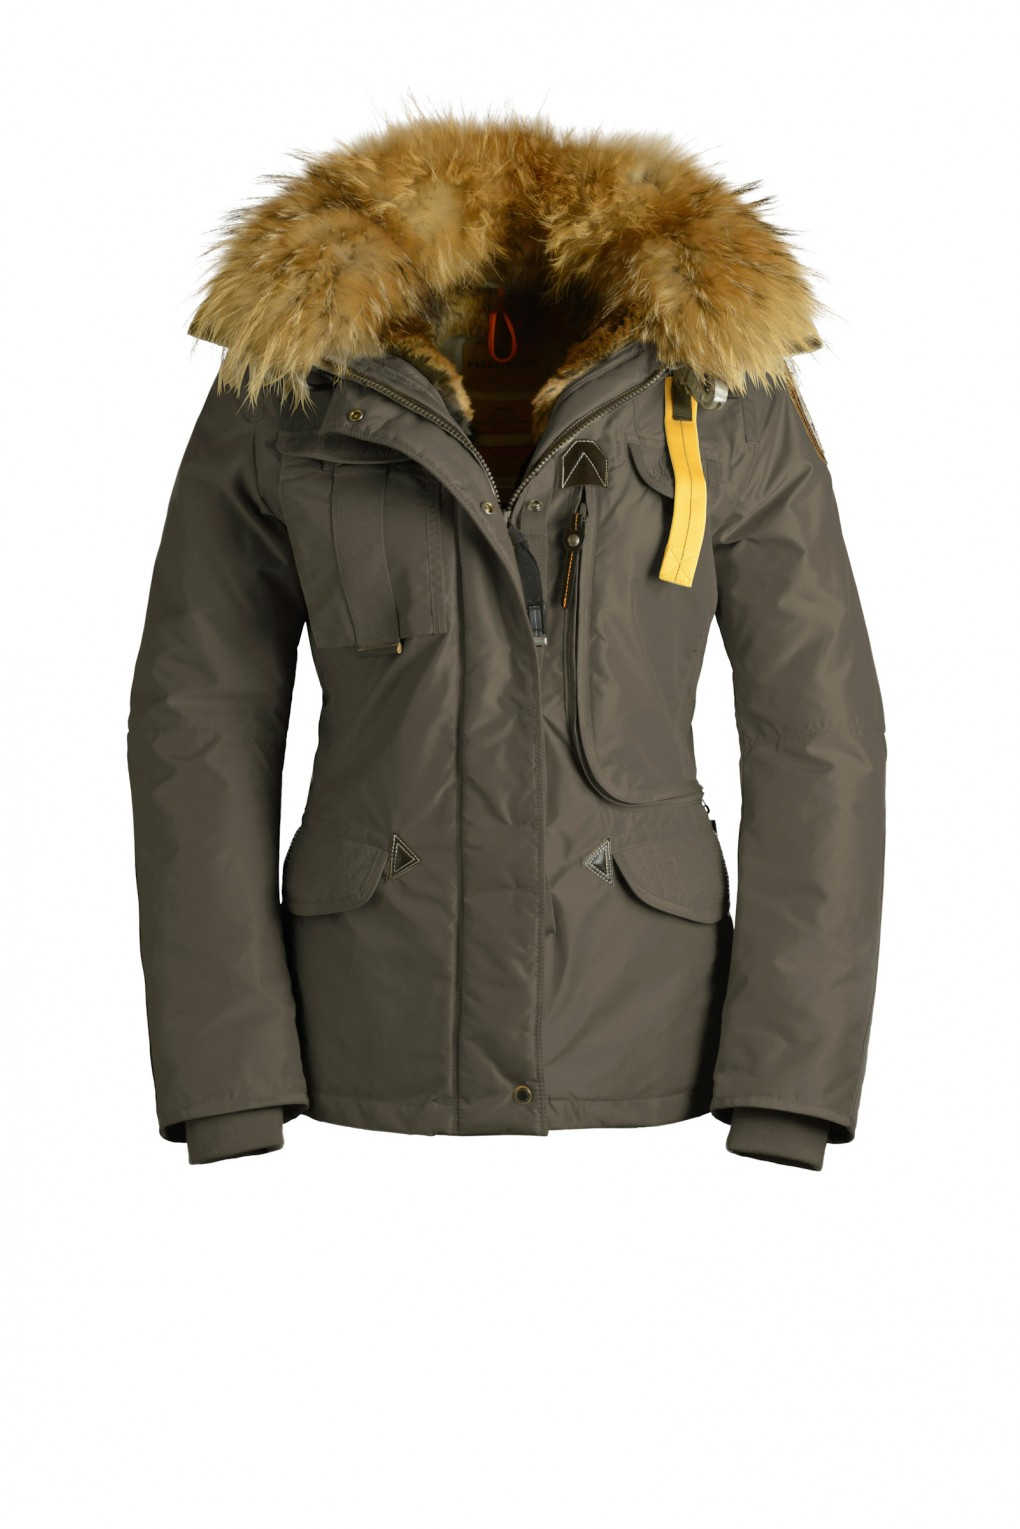 parajumpers DENALI woman outerwear Sage